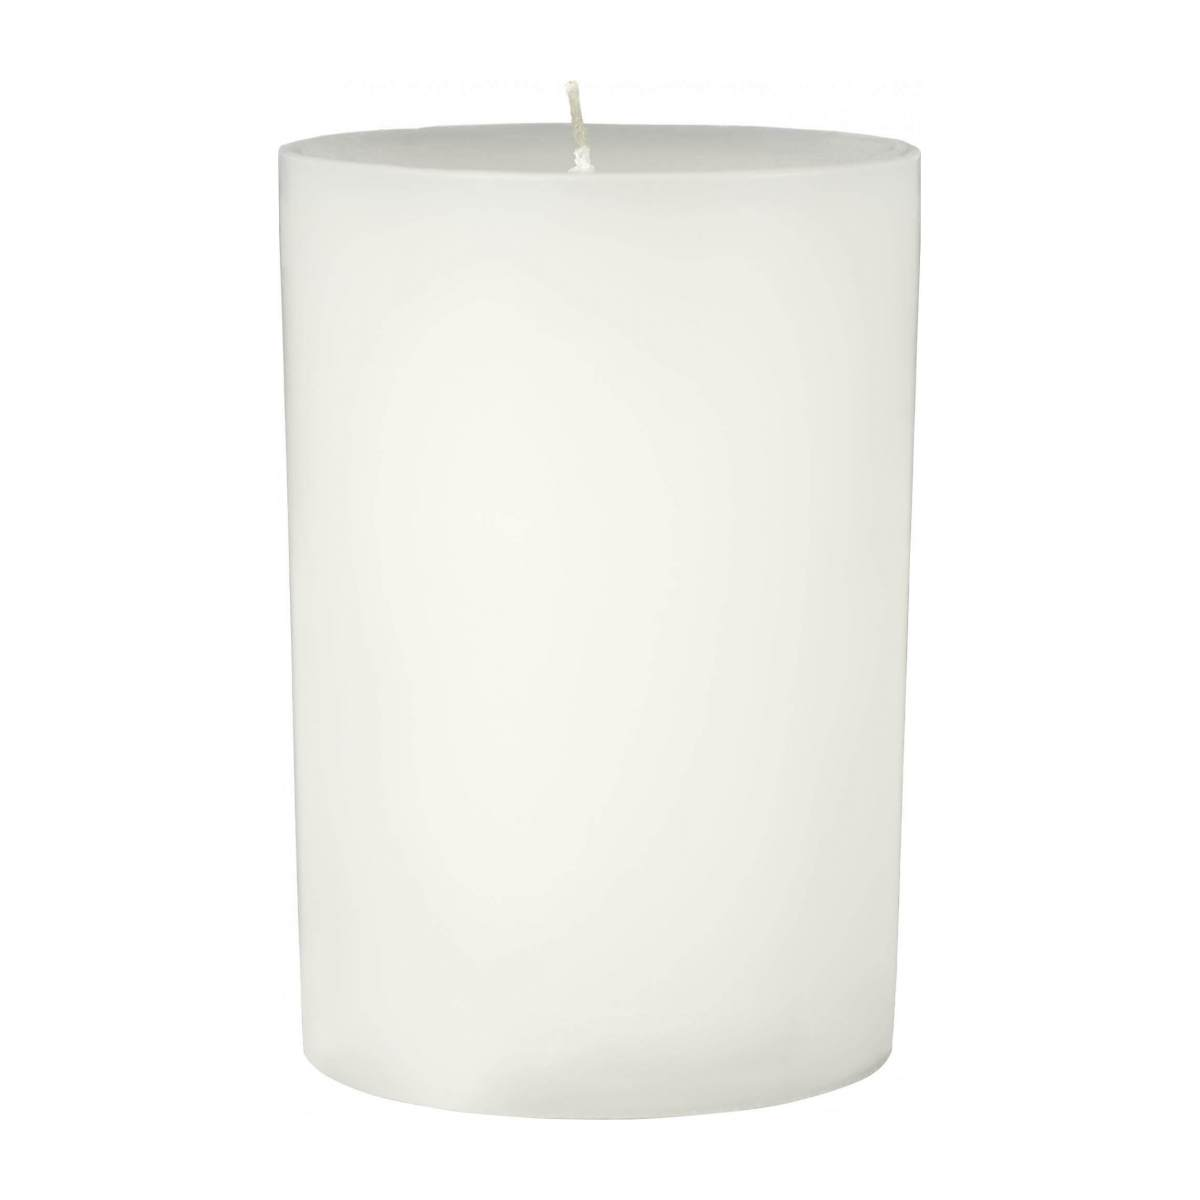 Refill for large Jasmine scented candle, 600g n°2